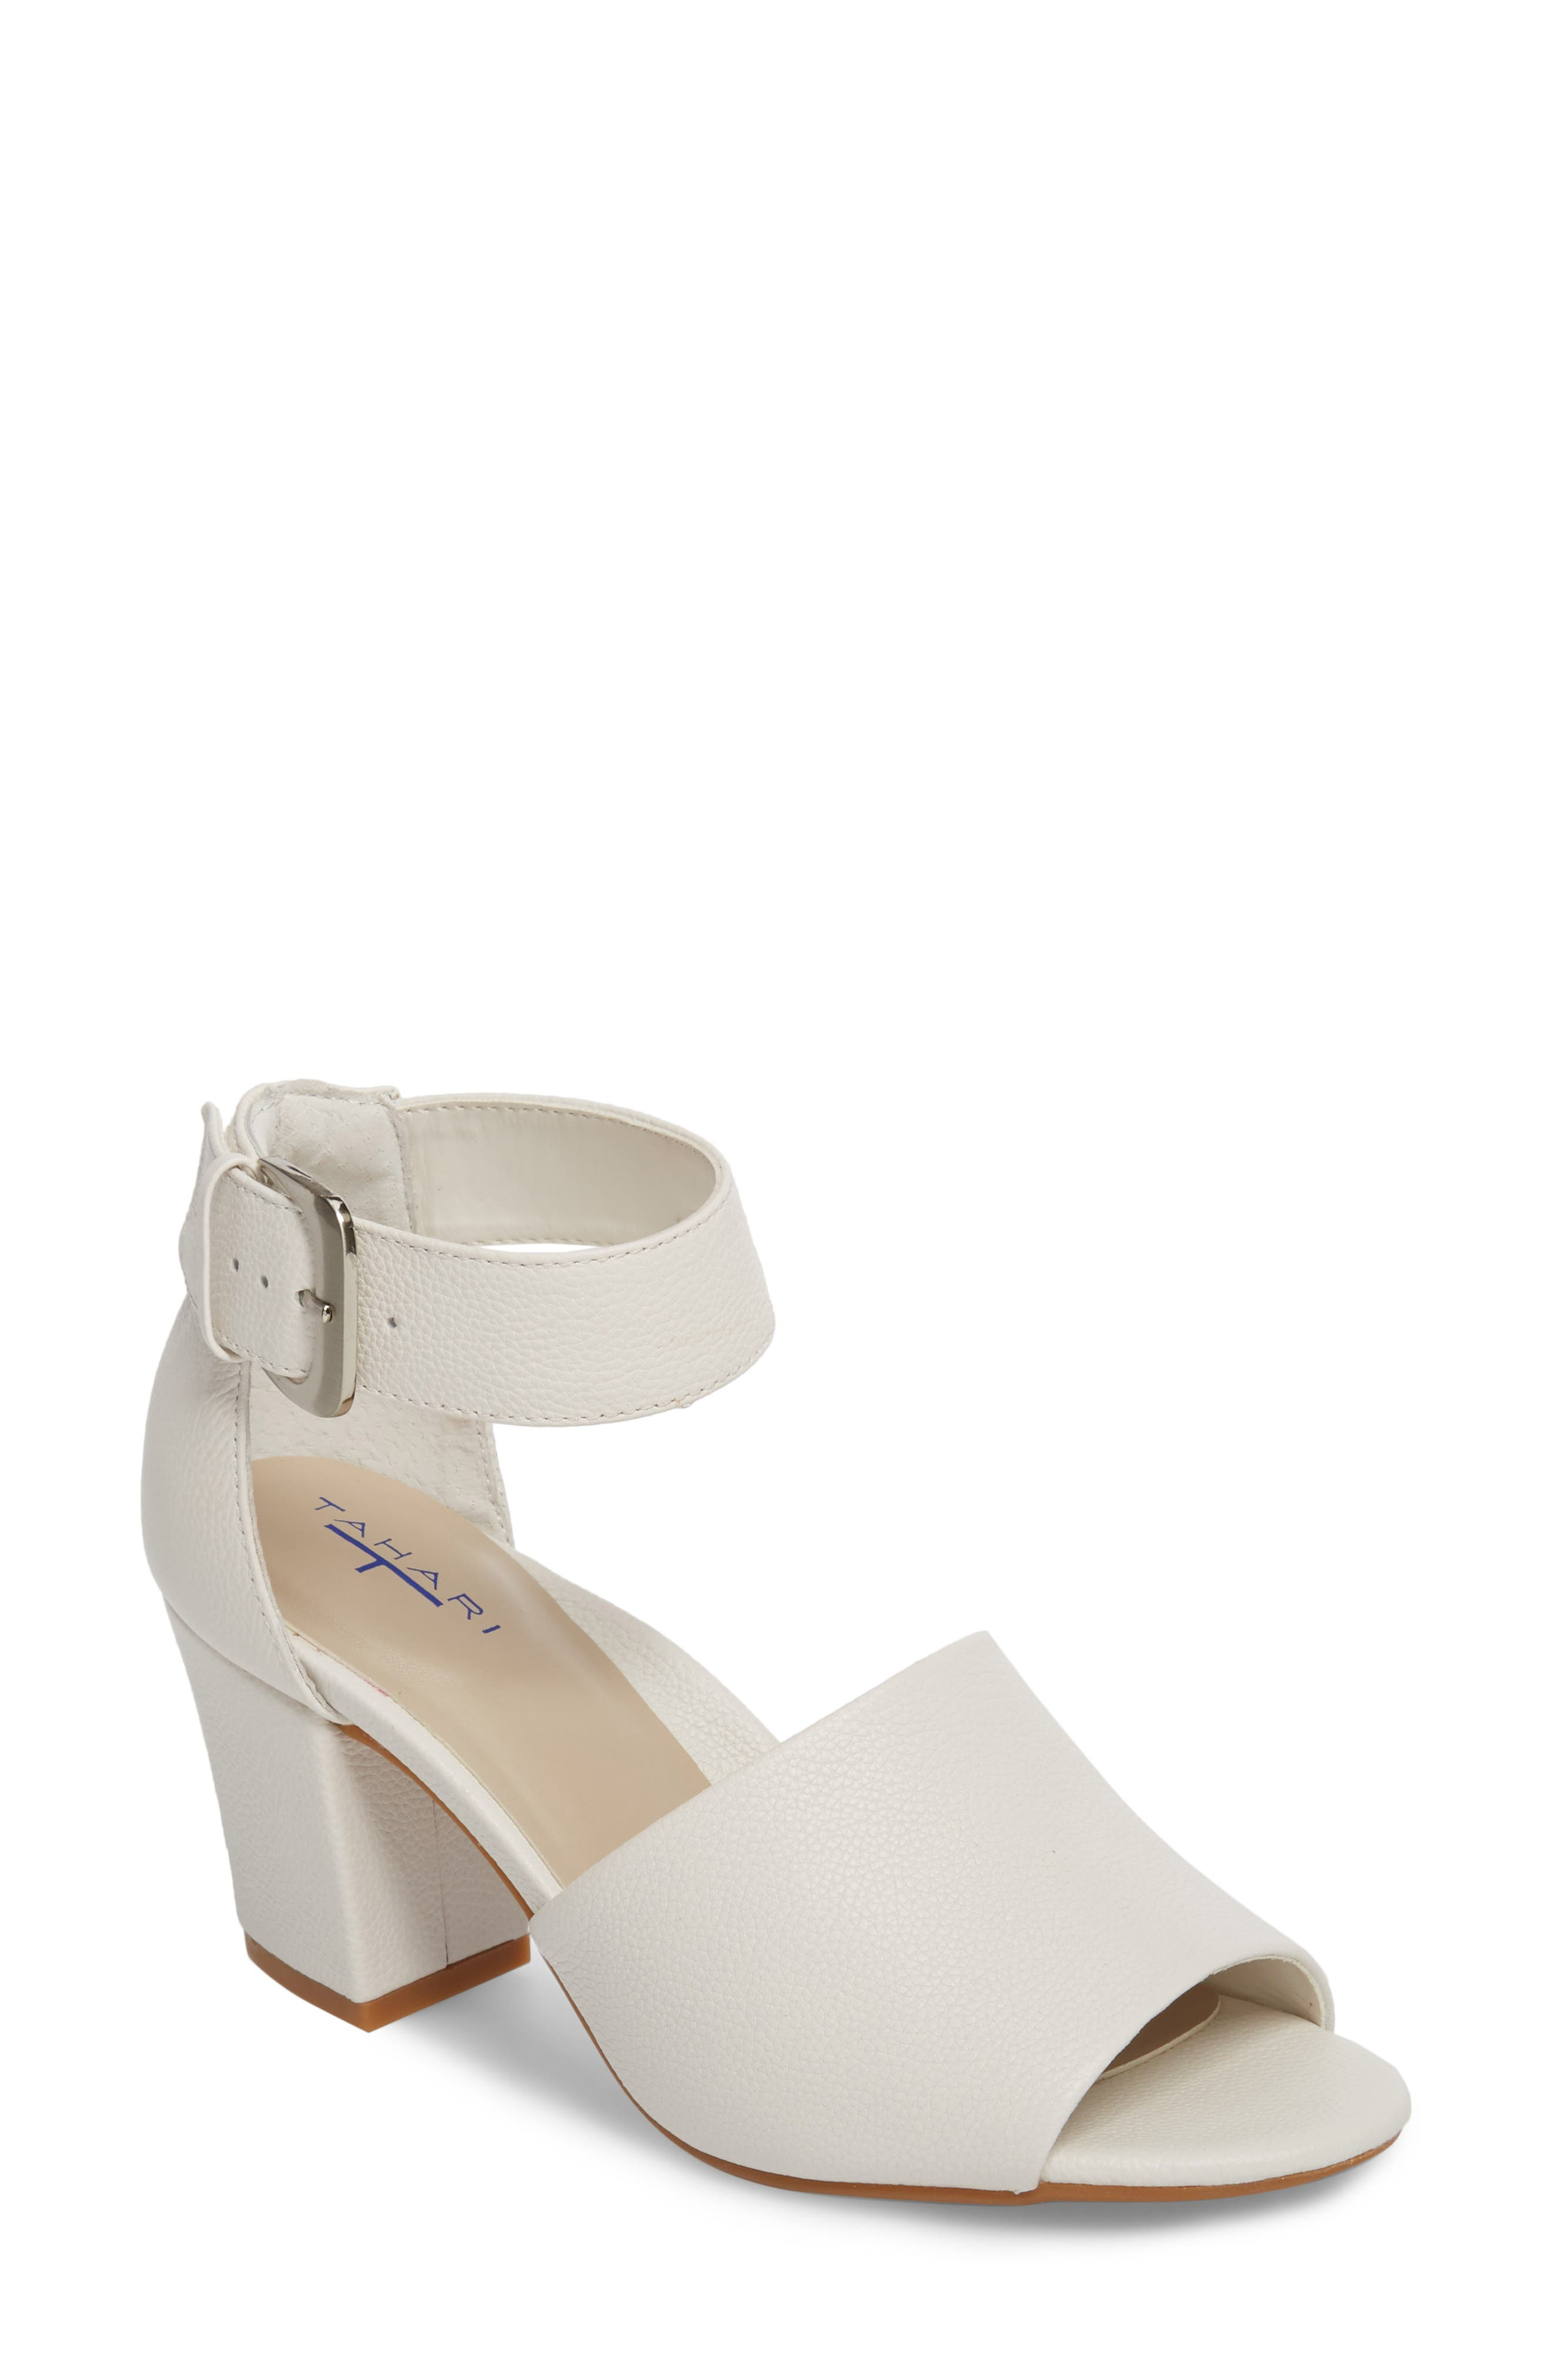 Piper Sandal,                         Main,                         color, WARM WHITE LEATHER